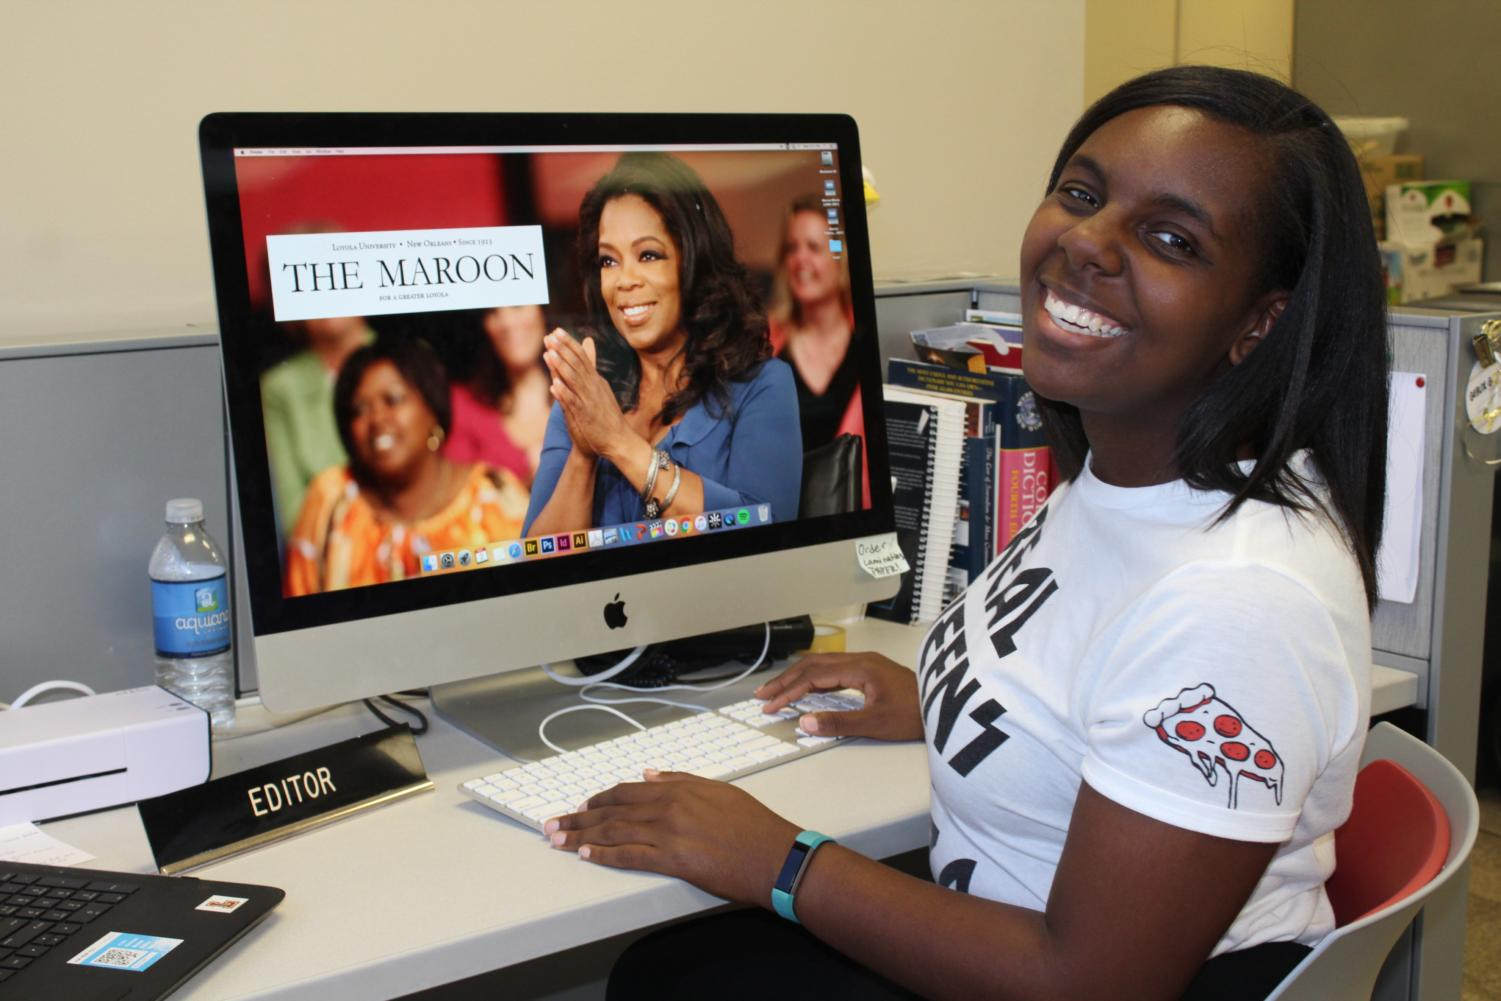 Sidney Holmes, mass communications senior, sitting at her Editor-in-Chief desk for the last time. Sidney gives us her own advice on how to keep motivated in school and in life, even citing Oprah Winfrey as a tip. Photo credit: Vanessa Alvarado